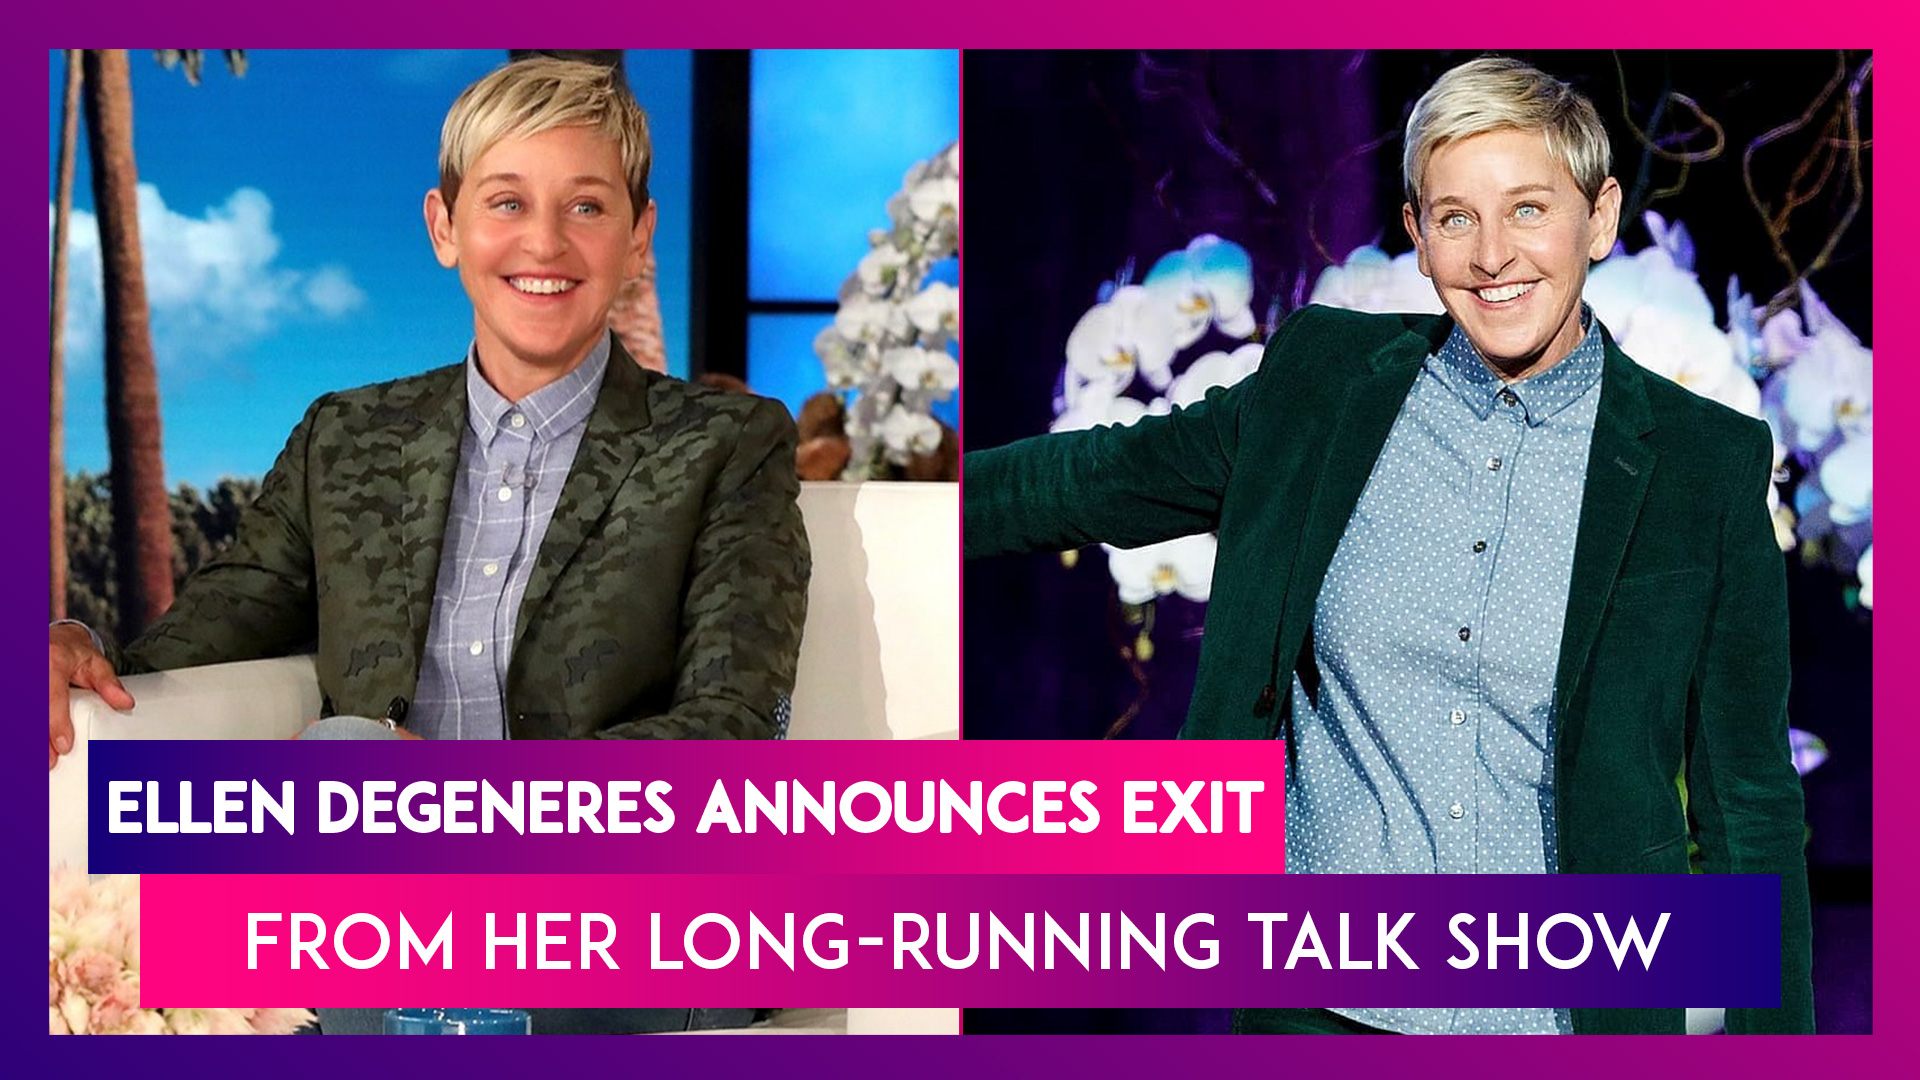 Ellen DeGeneres Announces Exit From Her Long-Running Talk Show After 19 Years